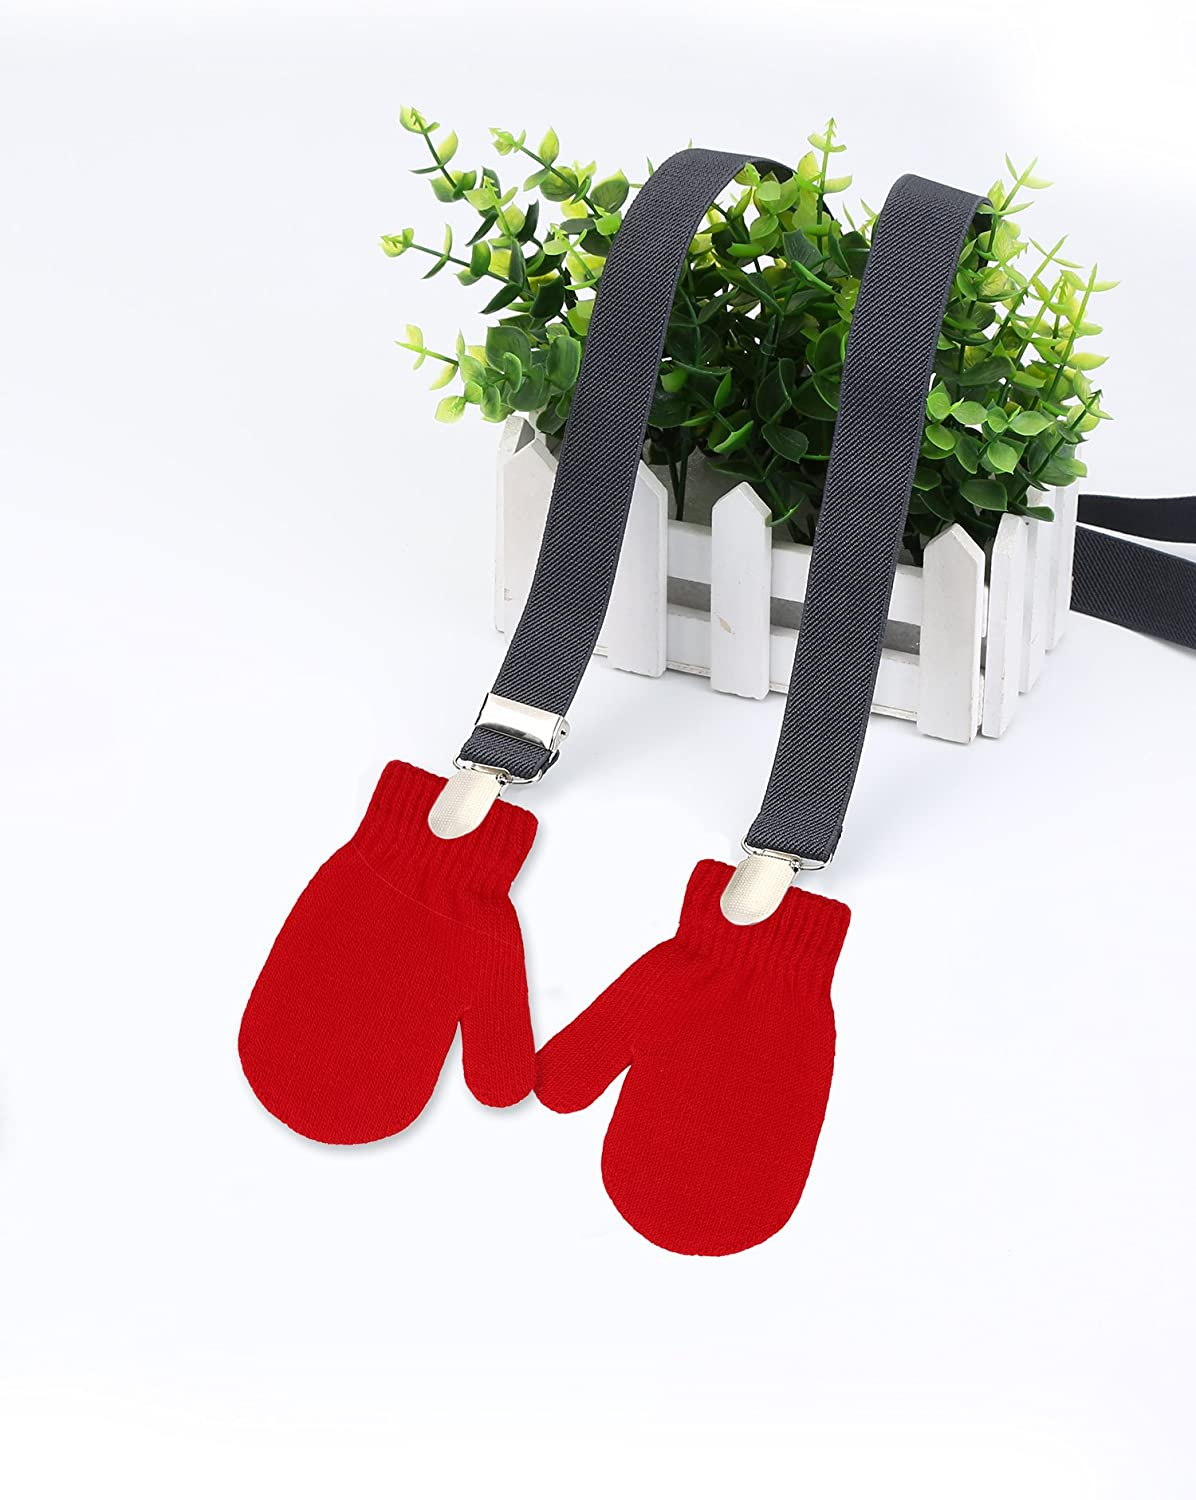 Satinior Mitten Clips Fully Adjustable (23.6-47.2 Inch) Glove Clips Elastic Gloves Clip for Kids